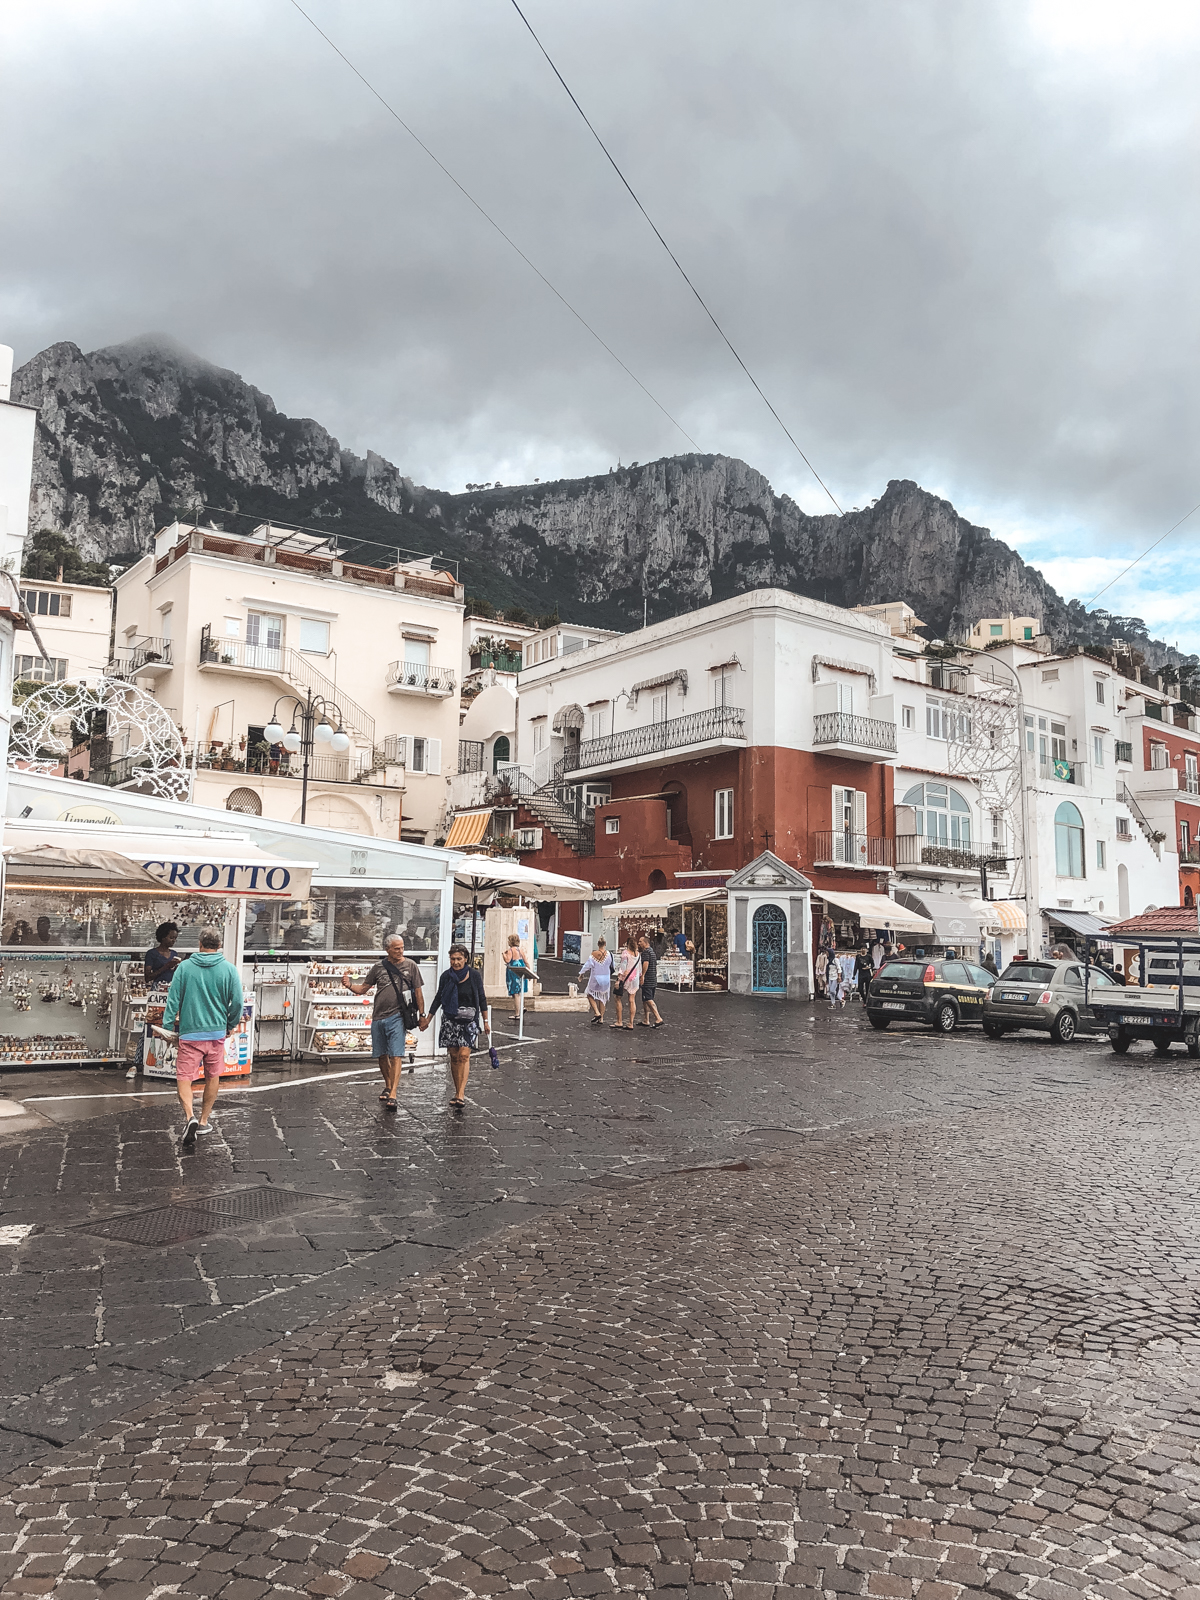 rainy, cloudy view when you arrive on Capri